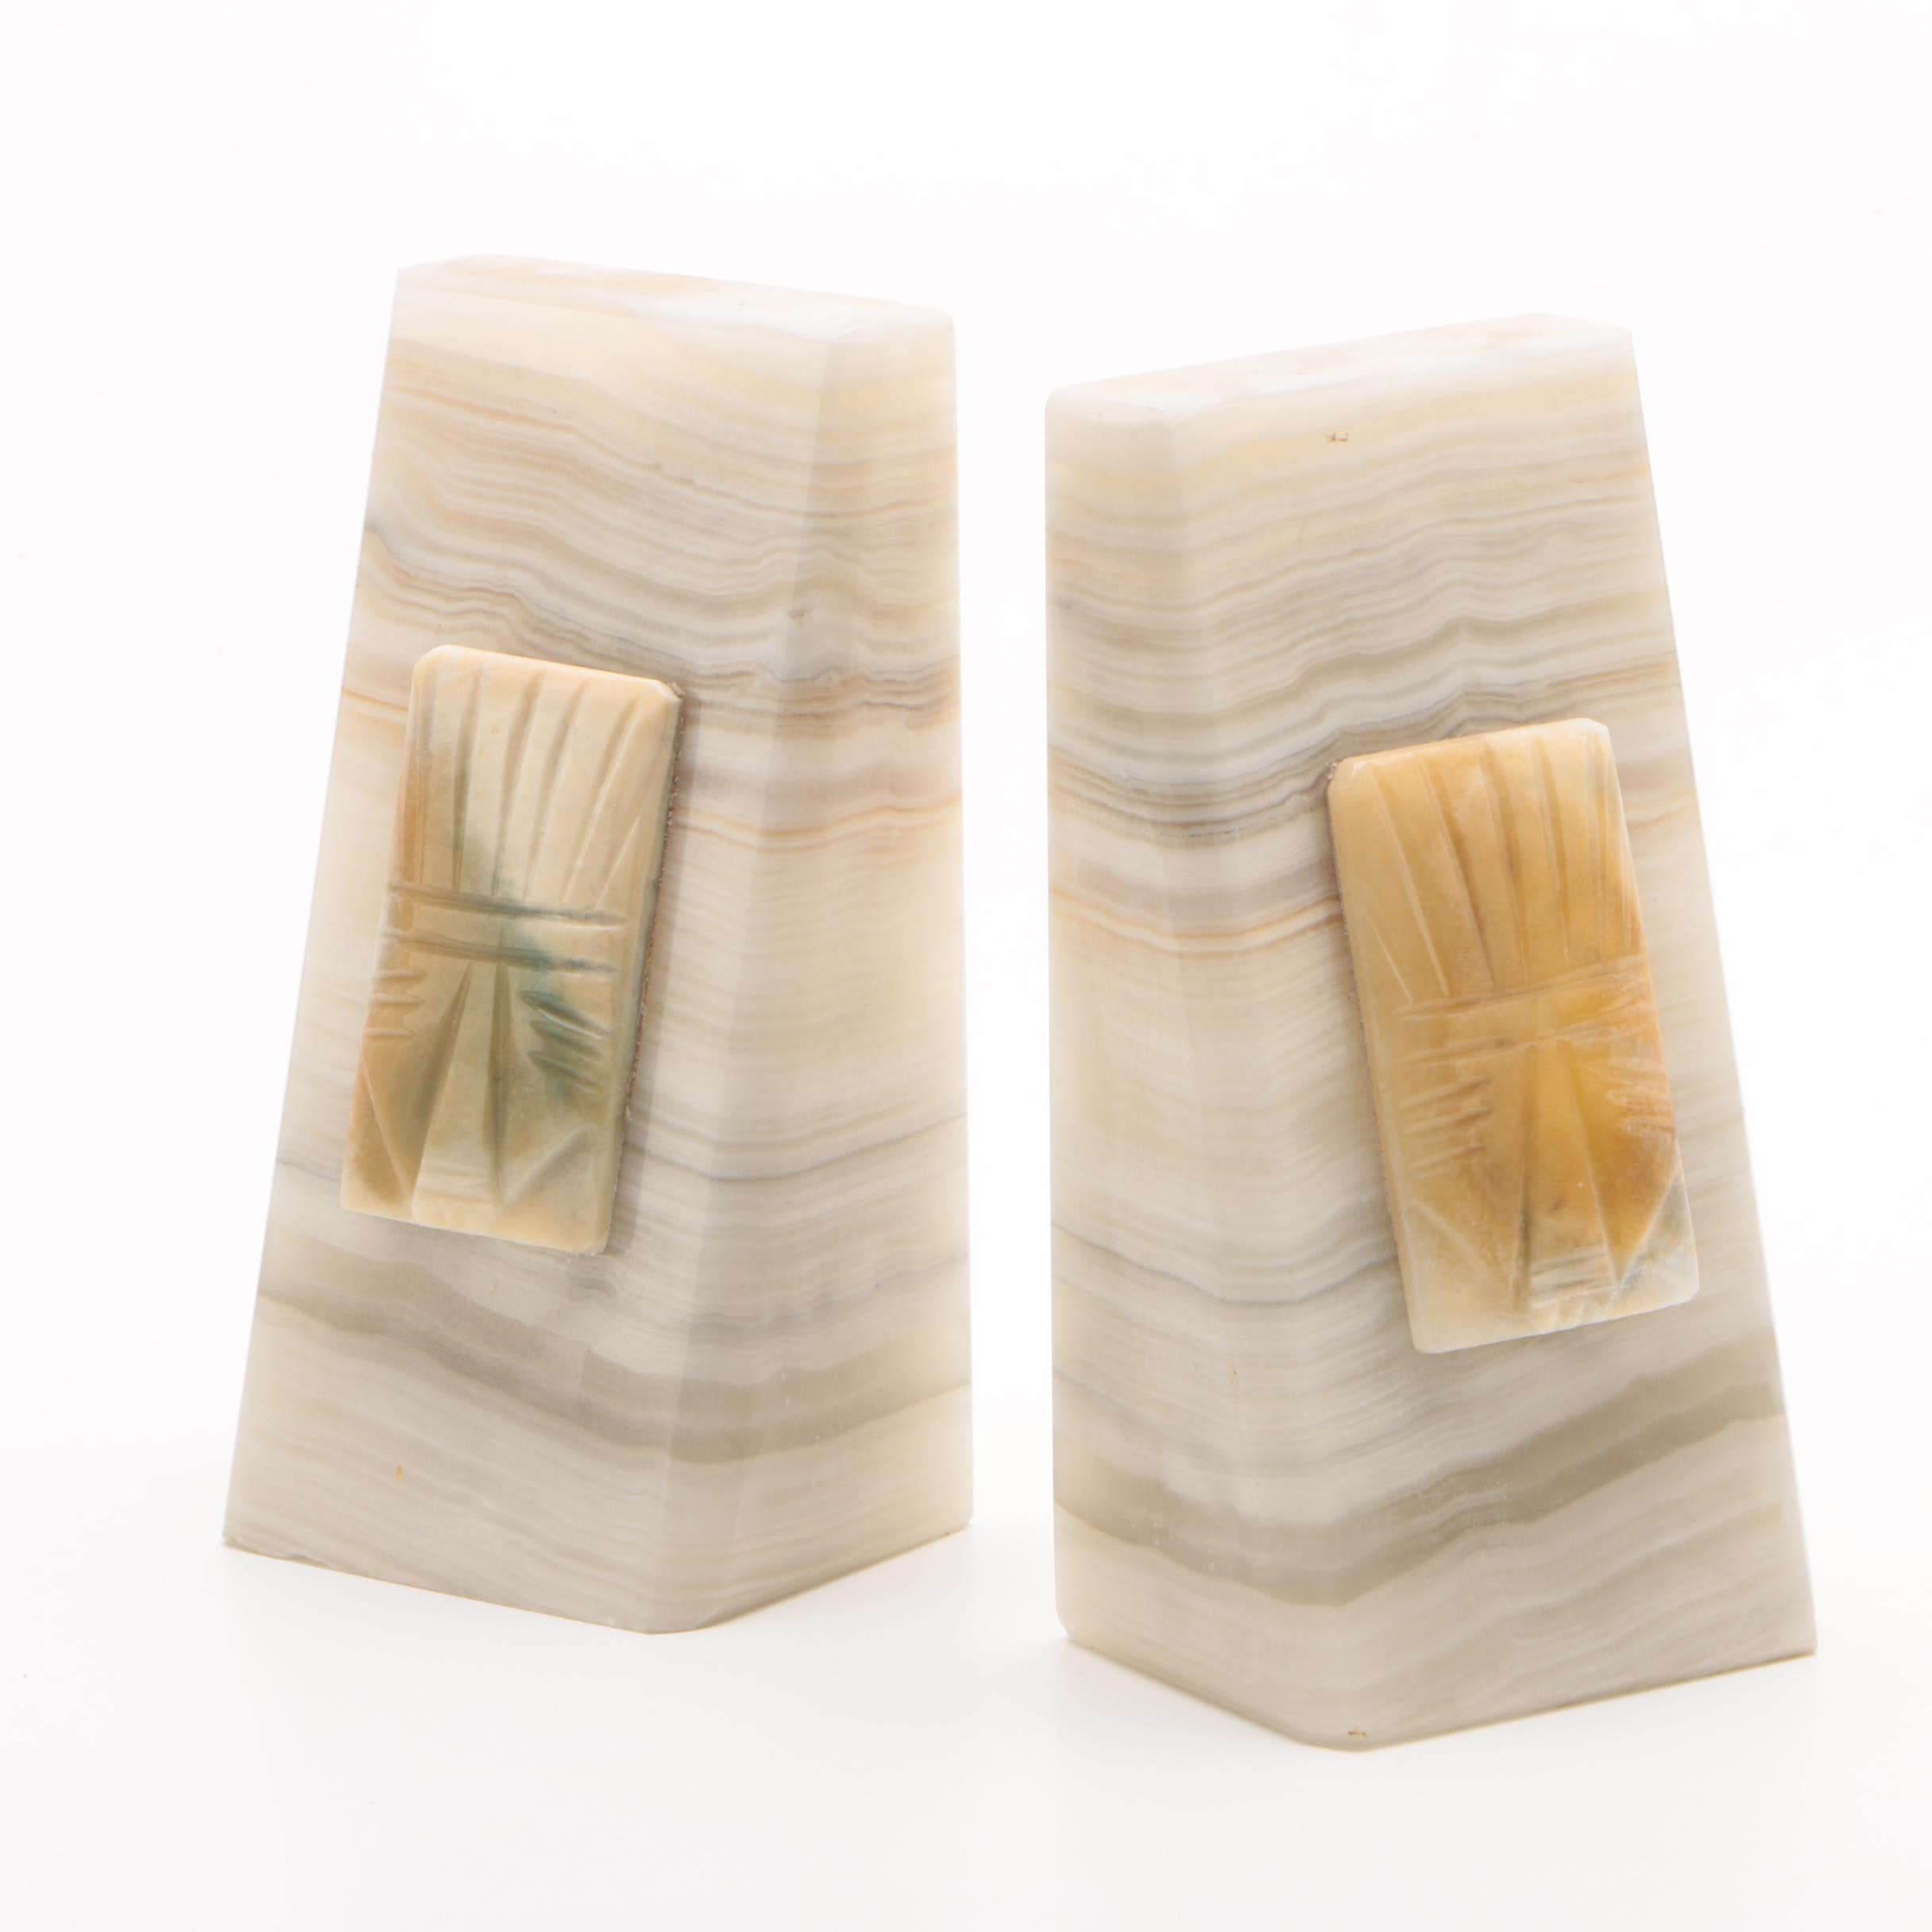 Vintage Mayan Revival Style Onyx Bookends